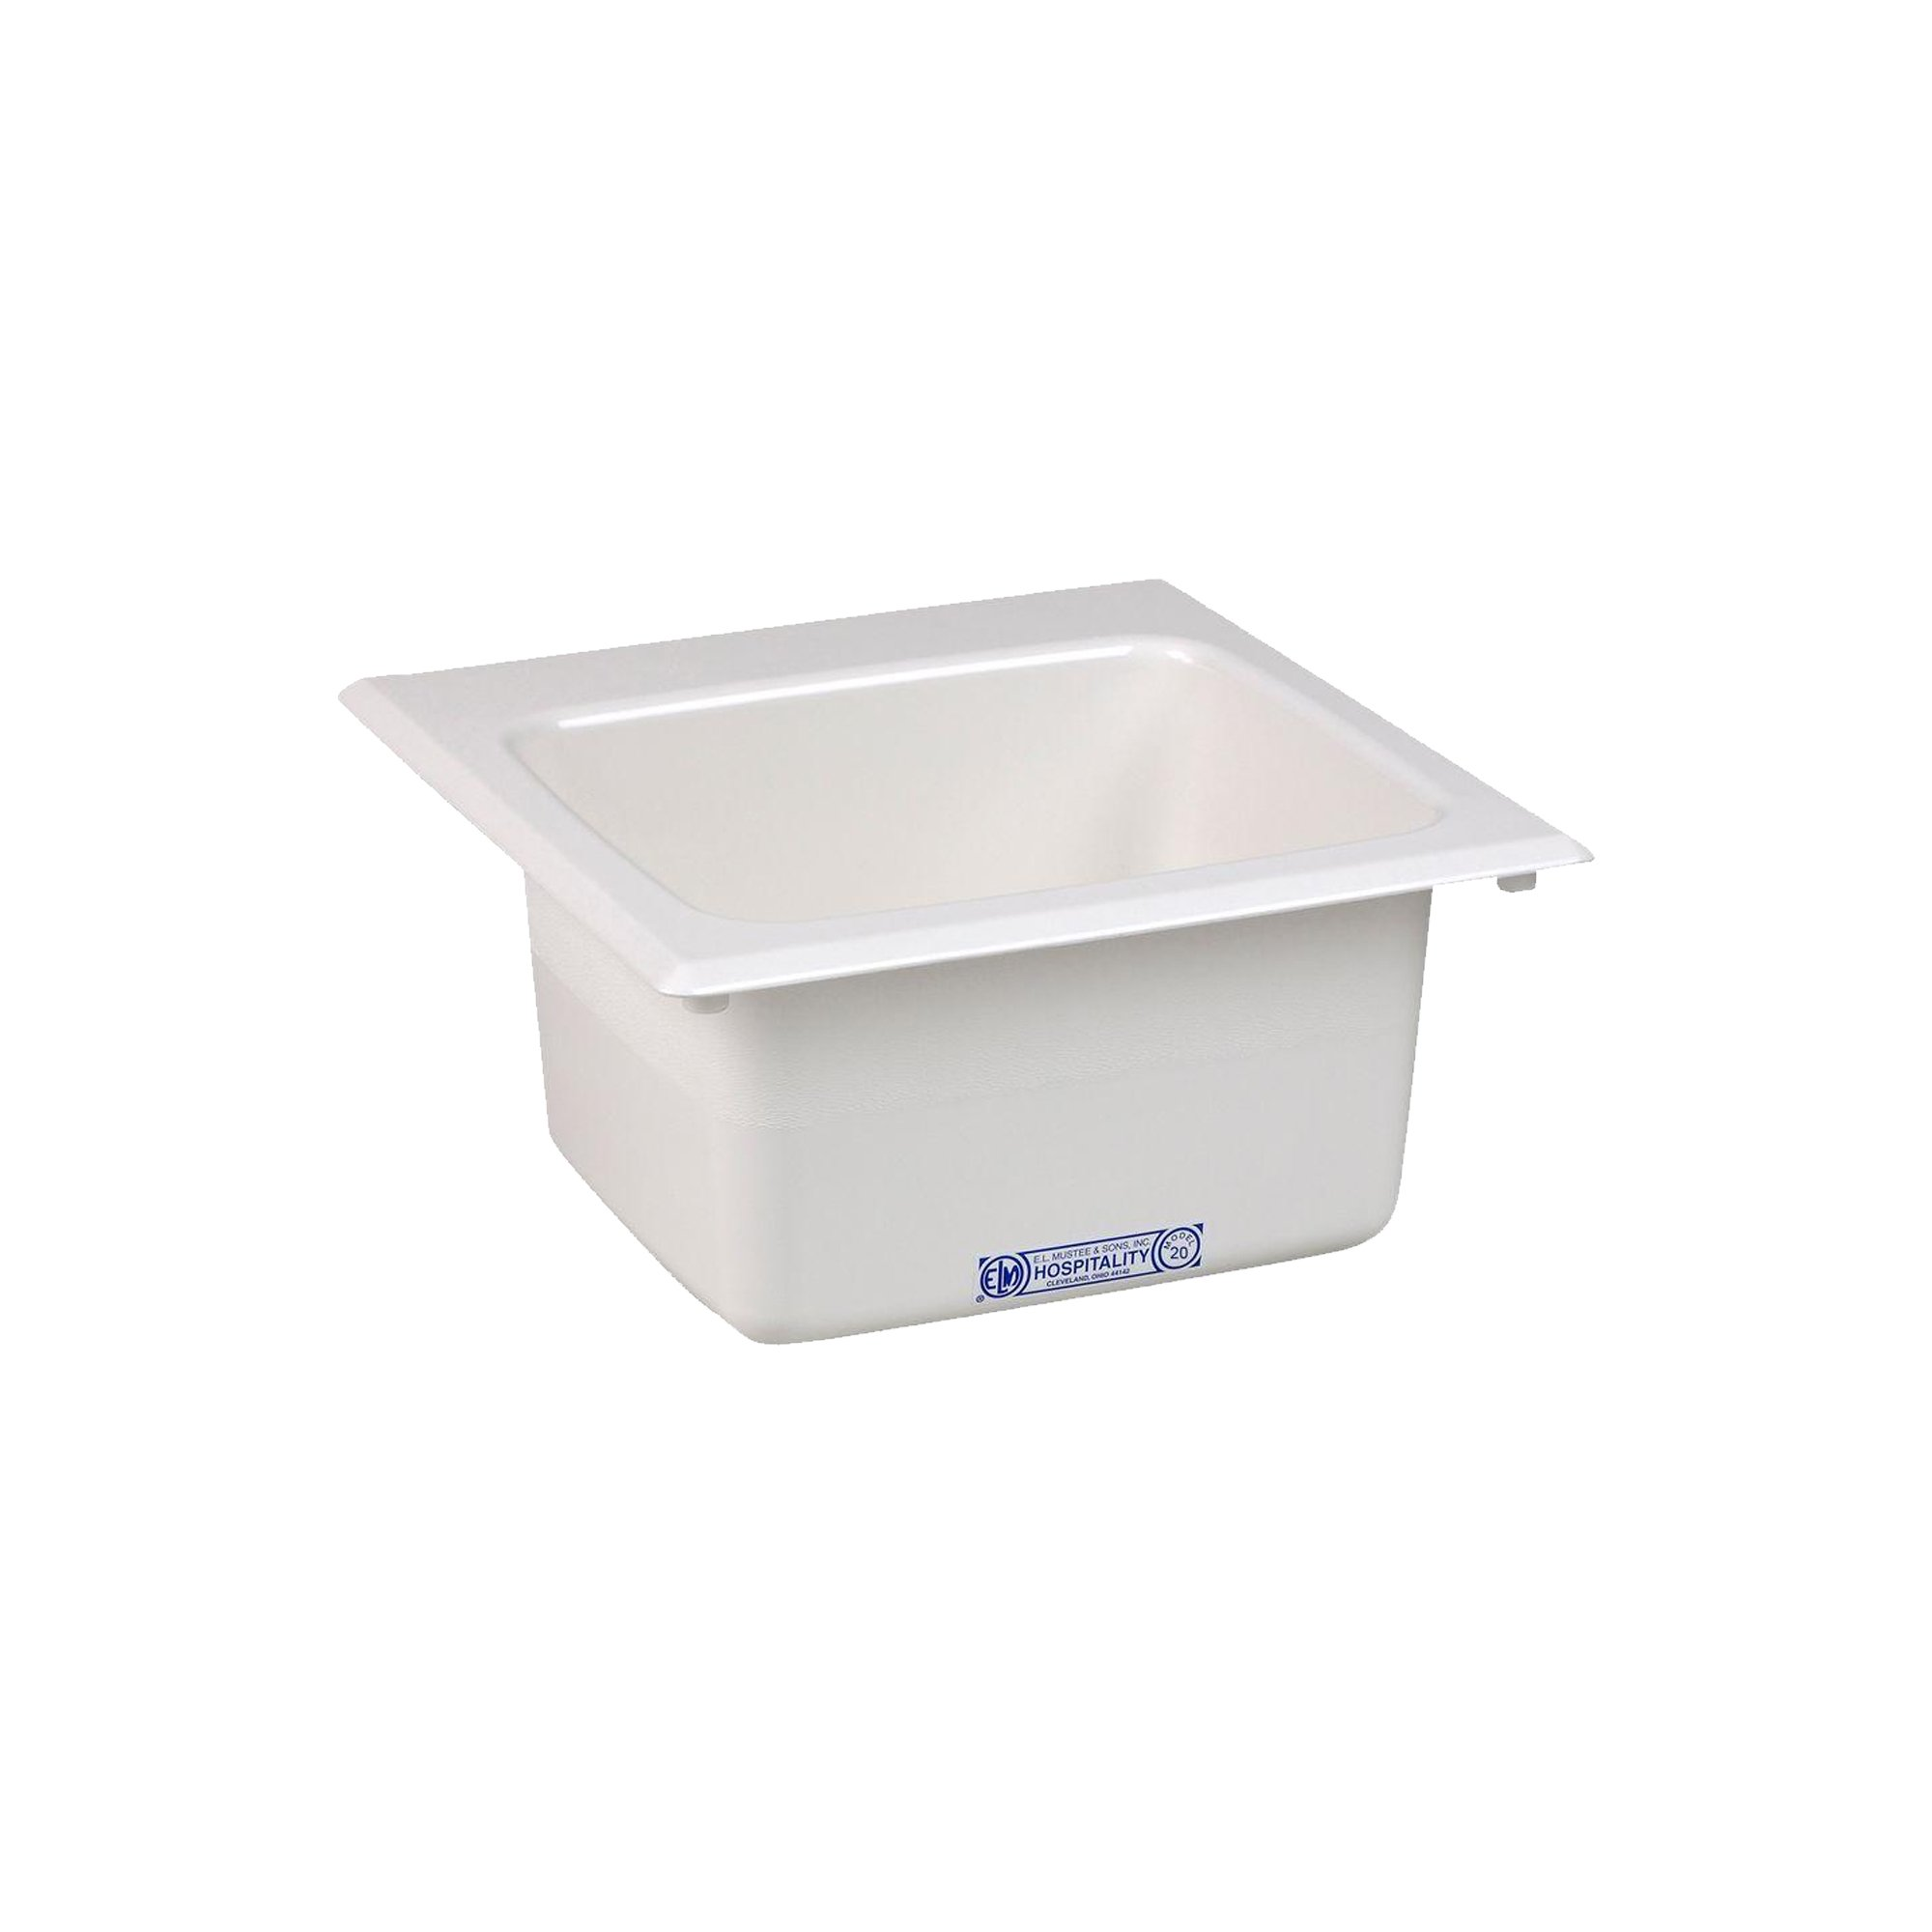 Mustee 20 Bar Sink, 15-Inch x 15-Inch, White by Mustee